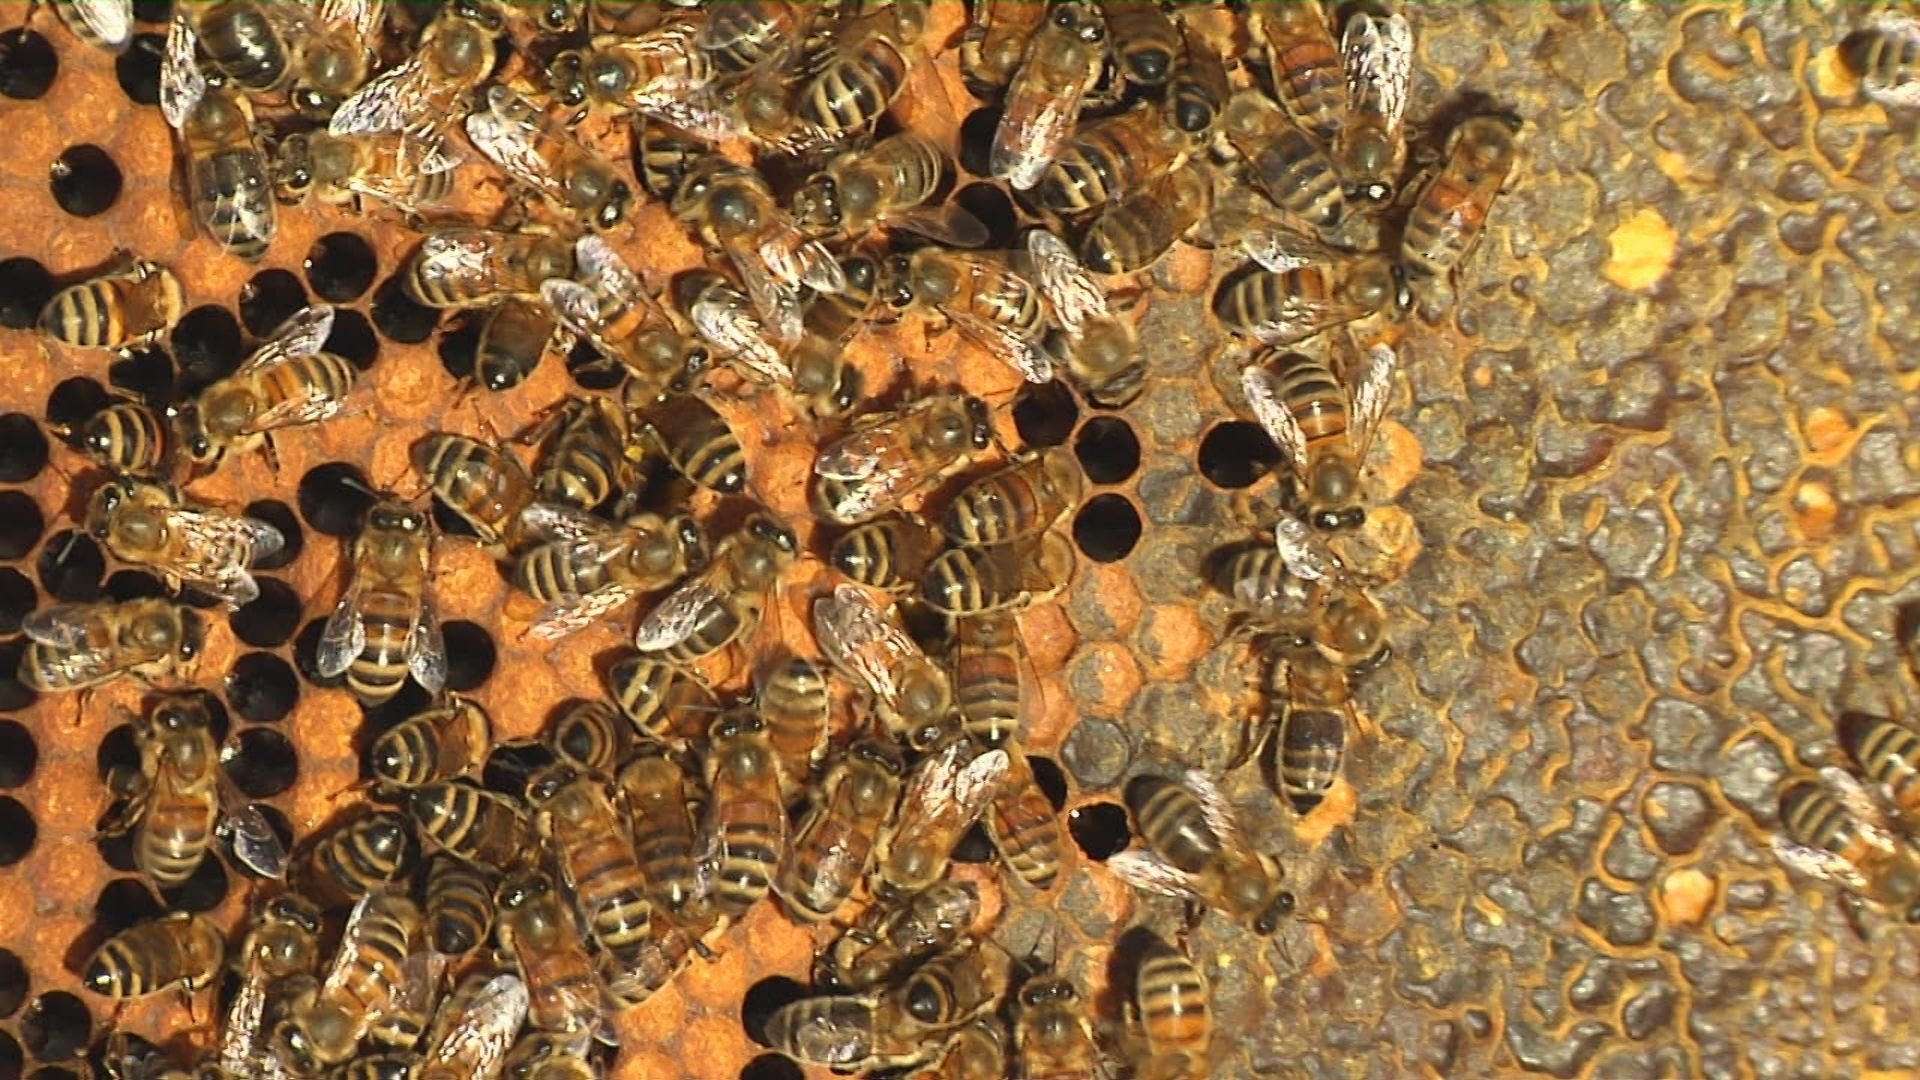 There could be thousands of bees in one hive.